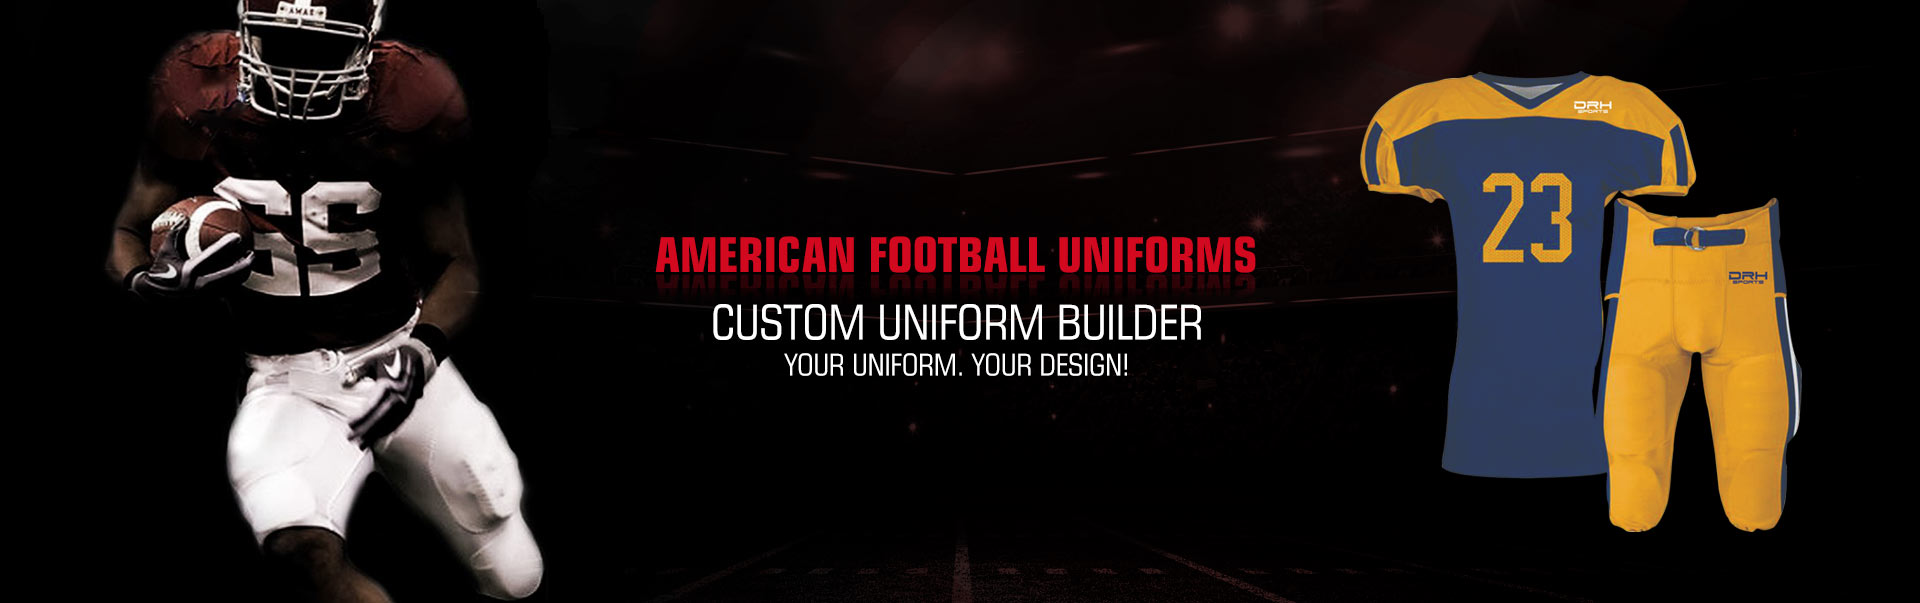 American Football Uniform Wholesaler, Suppliers in Fiji